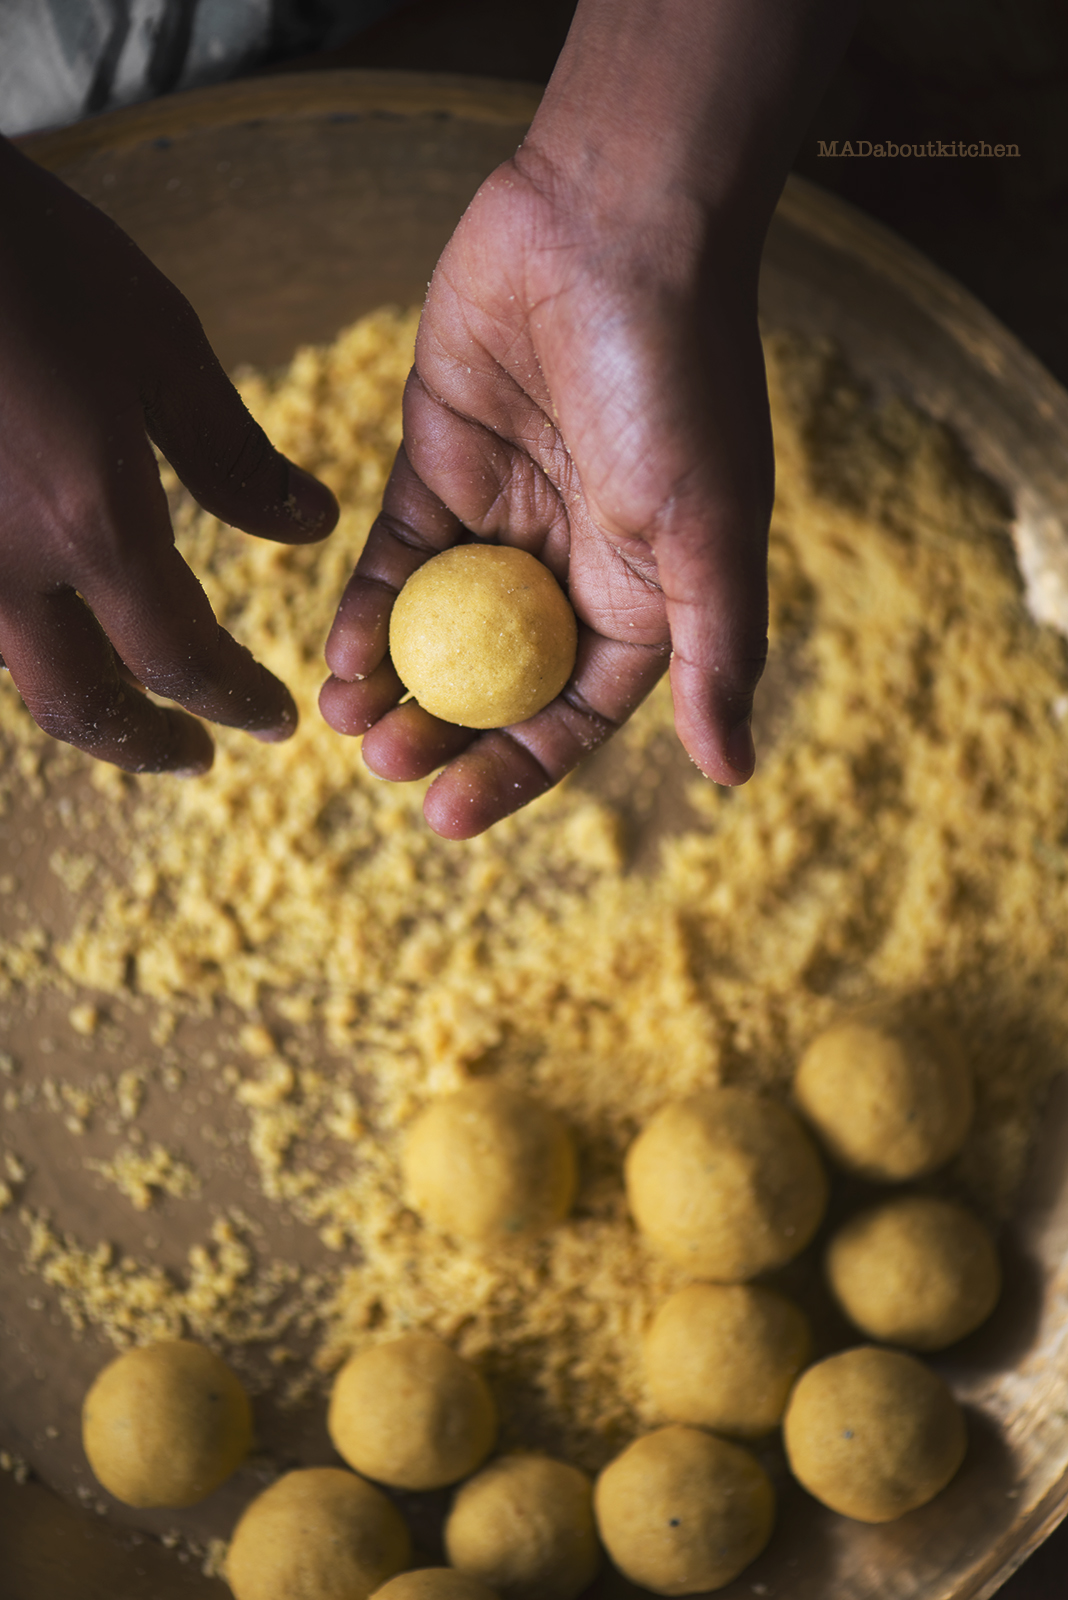 Make Homemade Besan Ladoo or Gram flour balls, one of the most common, healthy and most easiest ladoos made in India with this easy recipe.